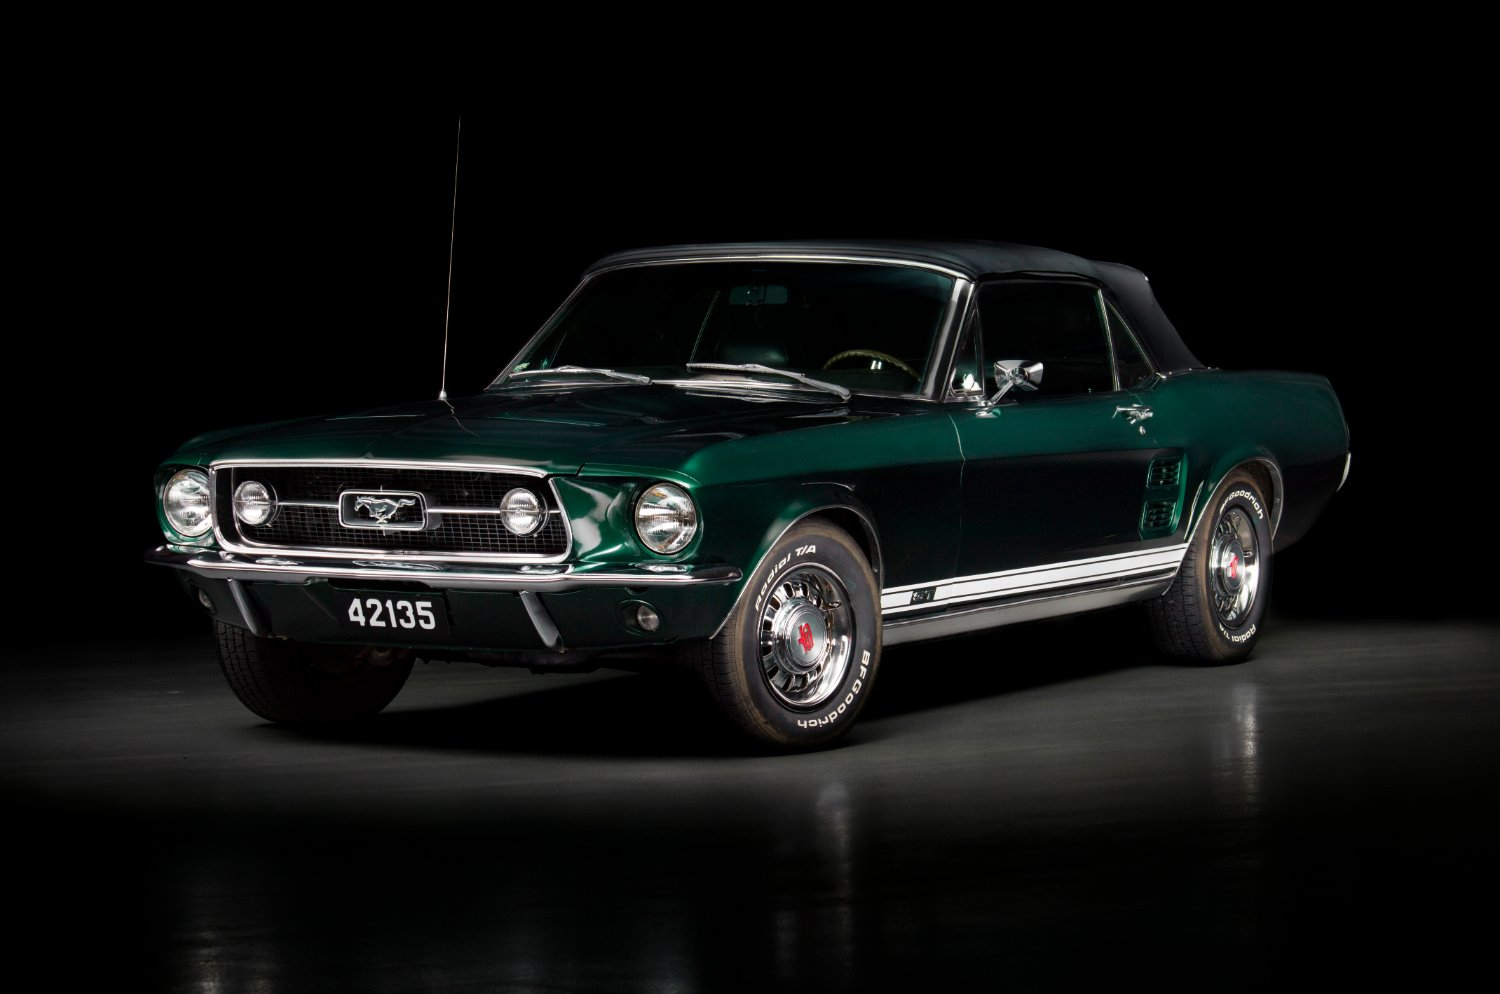 Tilly |1967 Ford Mustang GT Convertible |Auto Reflection by Baptiste Griselle